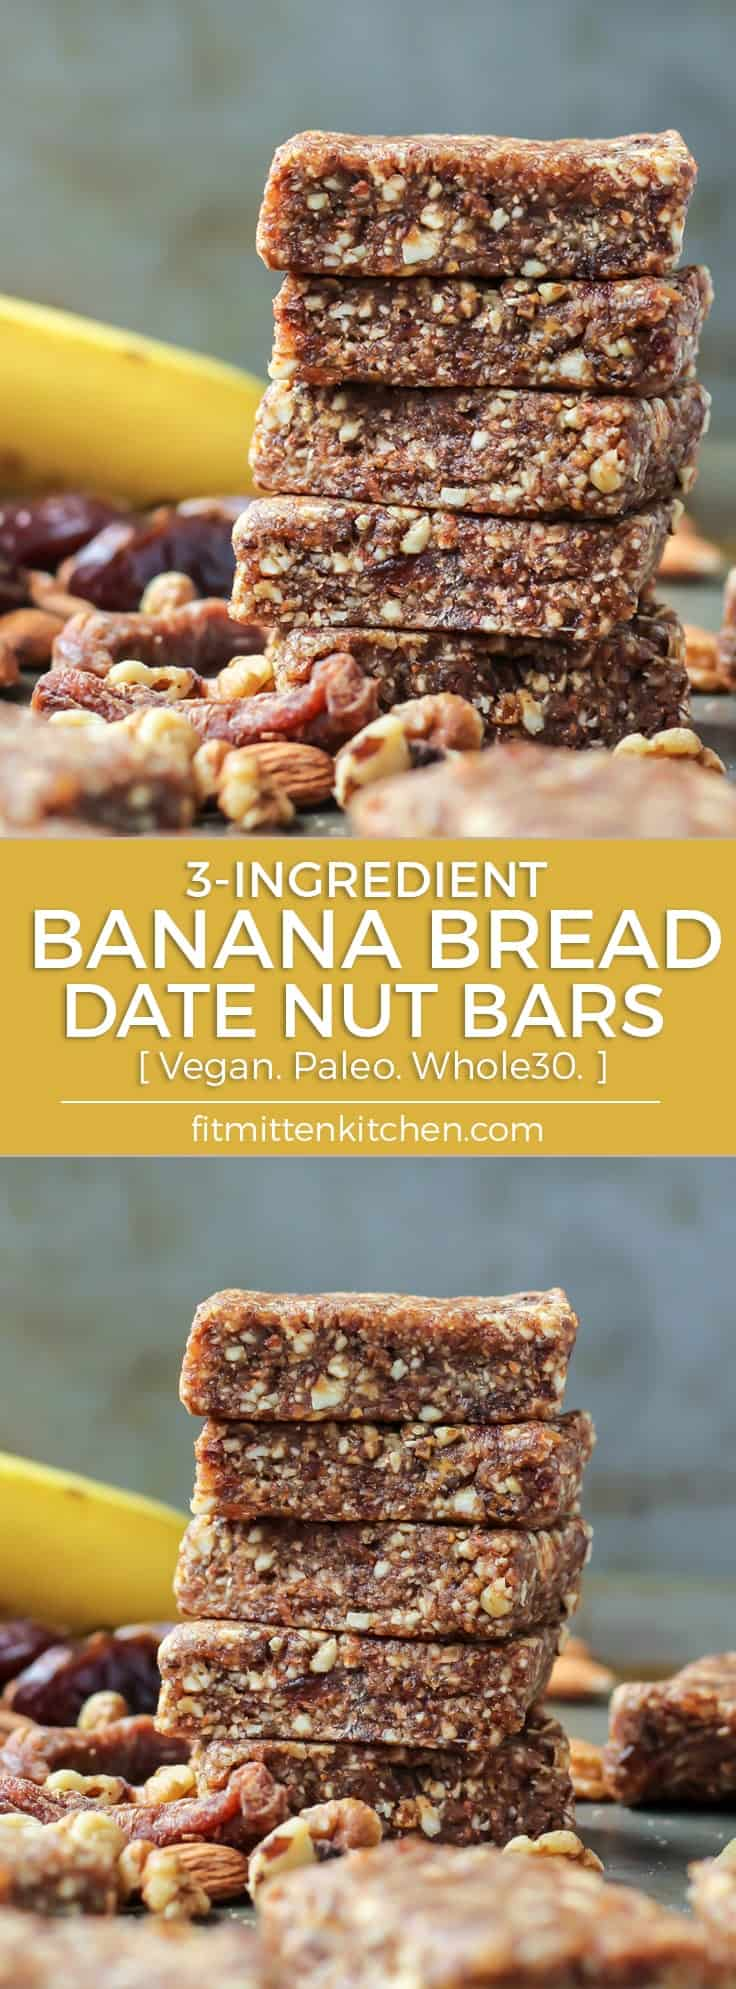 3-Ingredient Banana Bread Date Nut Energy Bars vegan paleo whole30